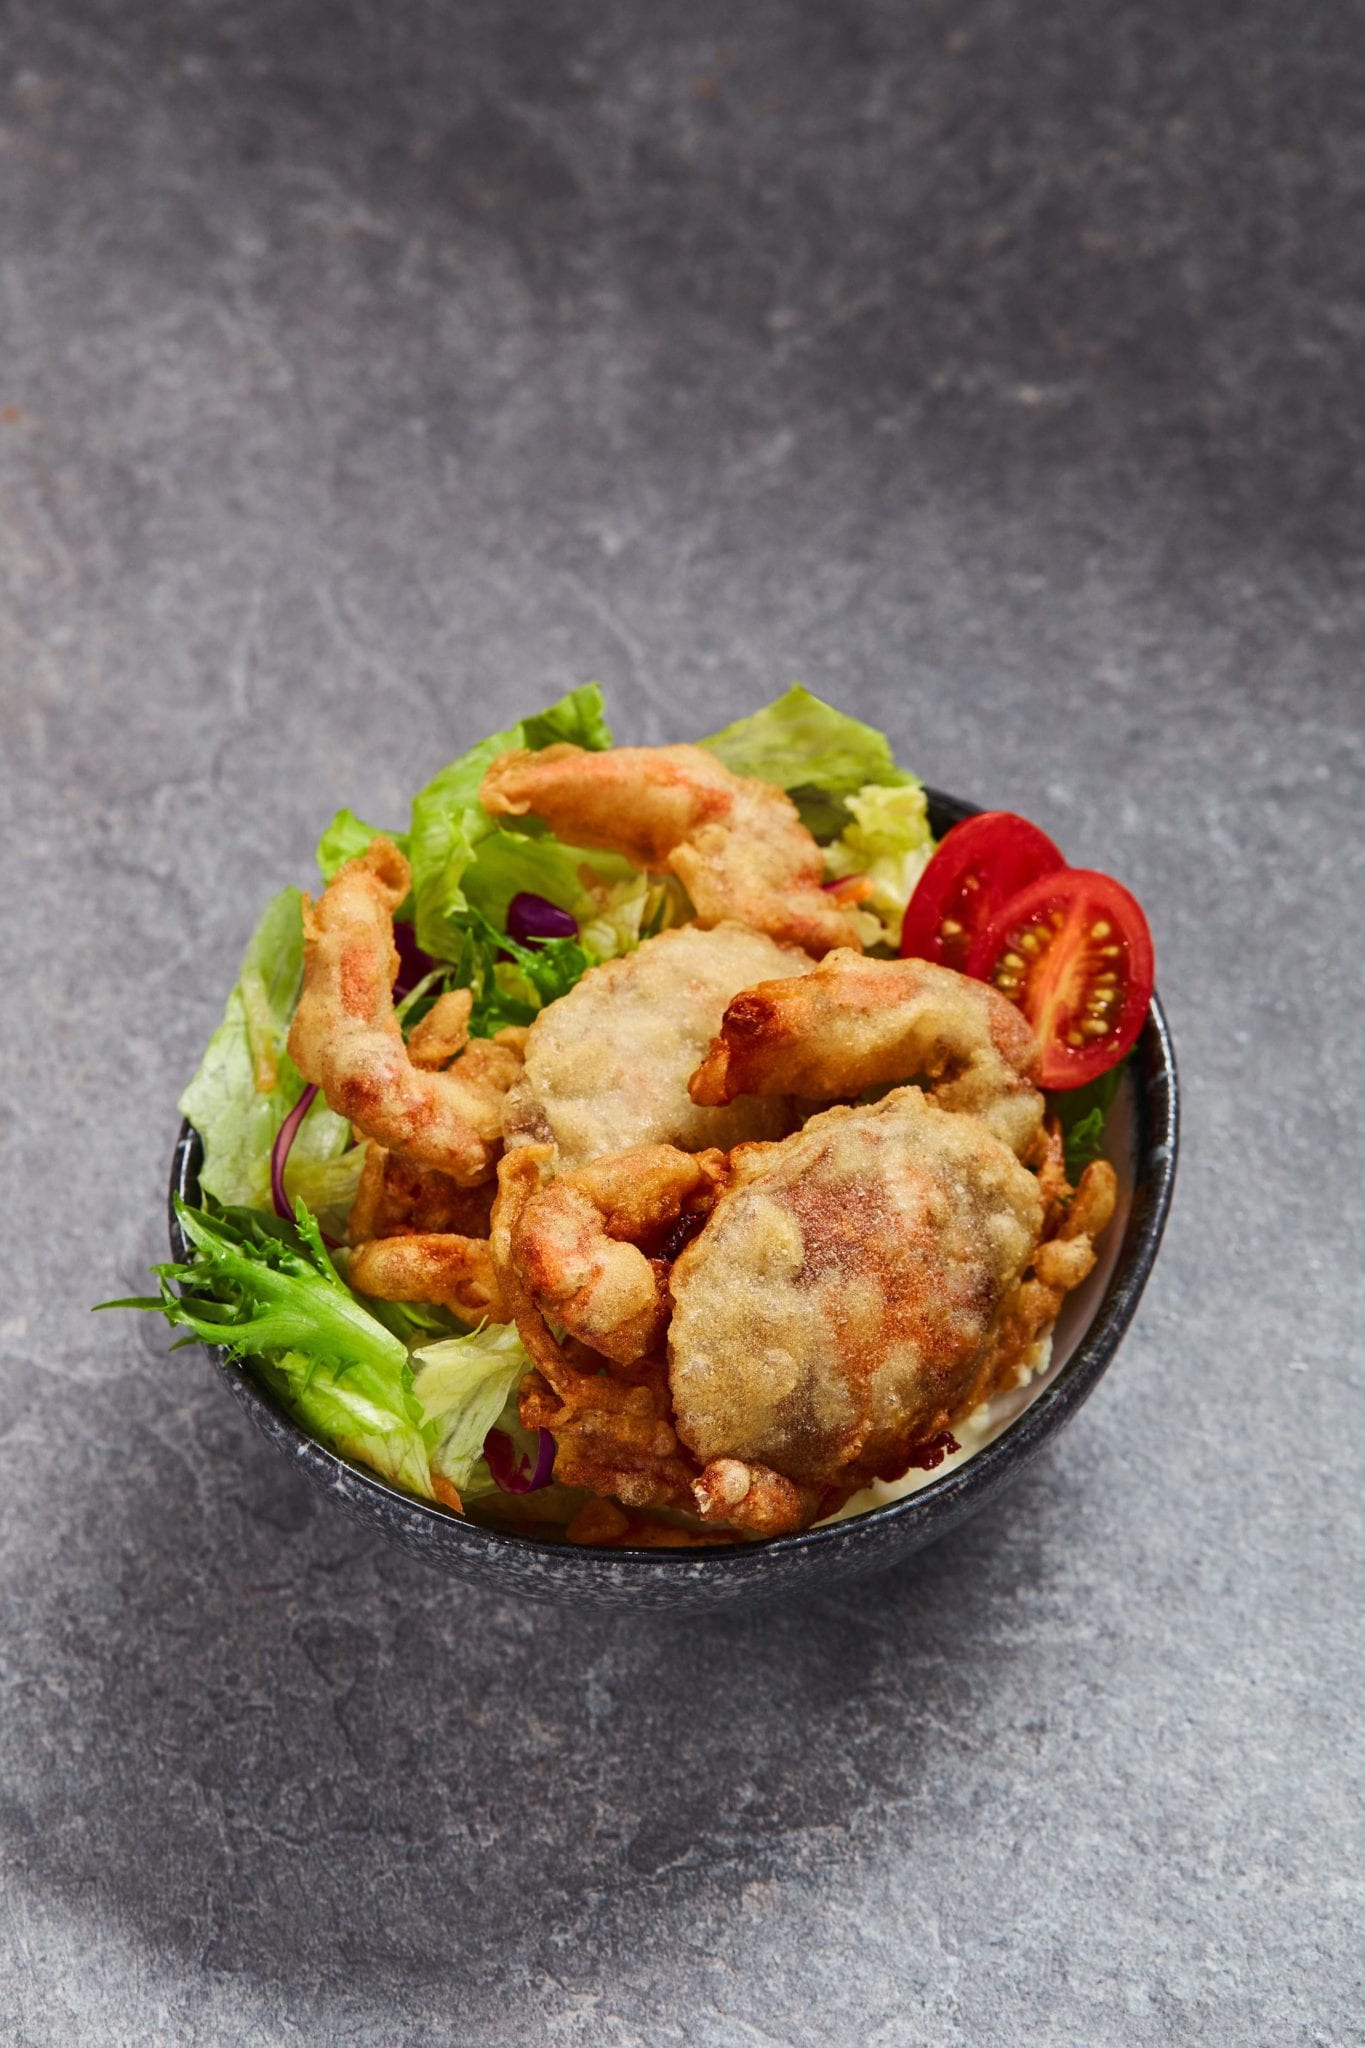 fried soft shell crab rice bowl with lettuce